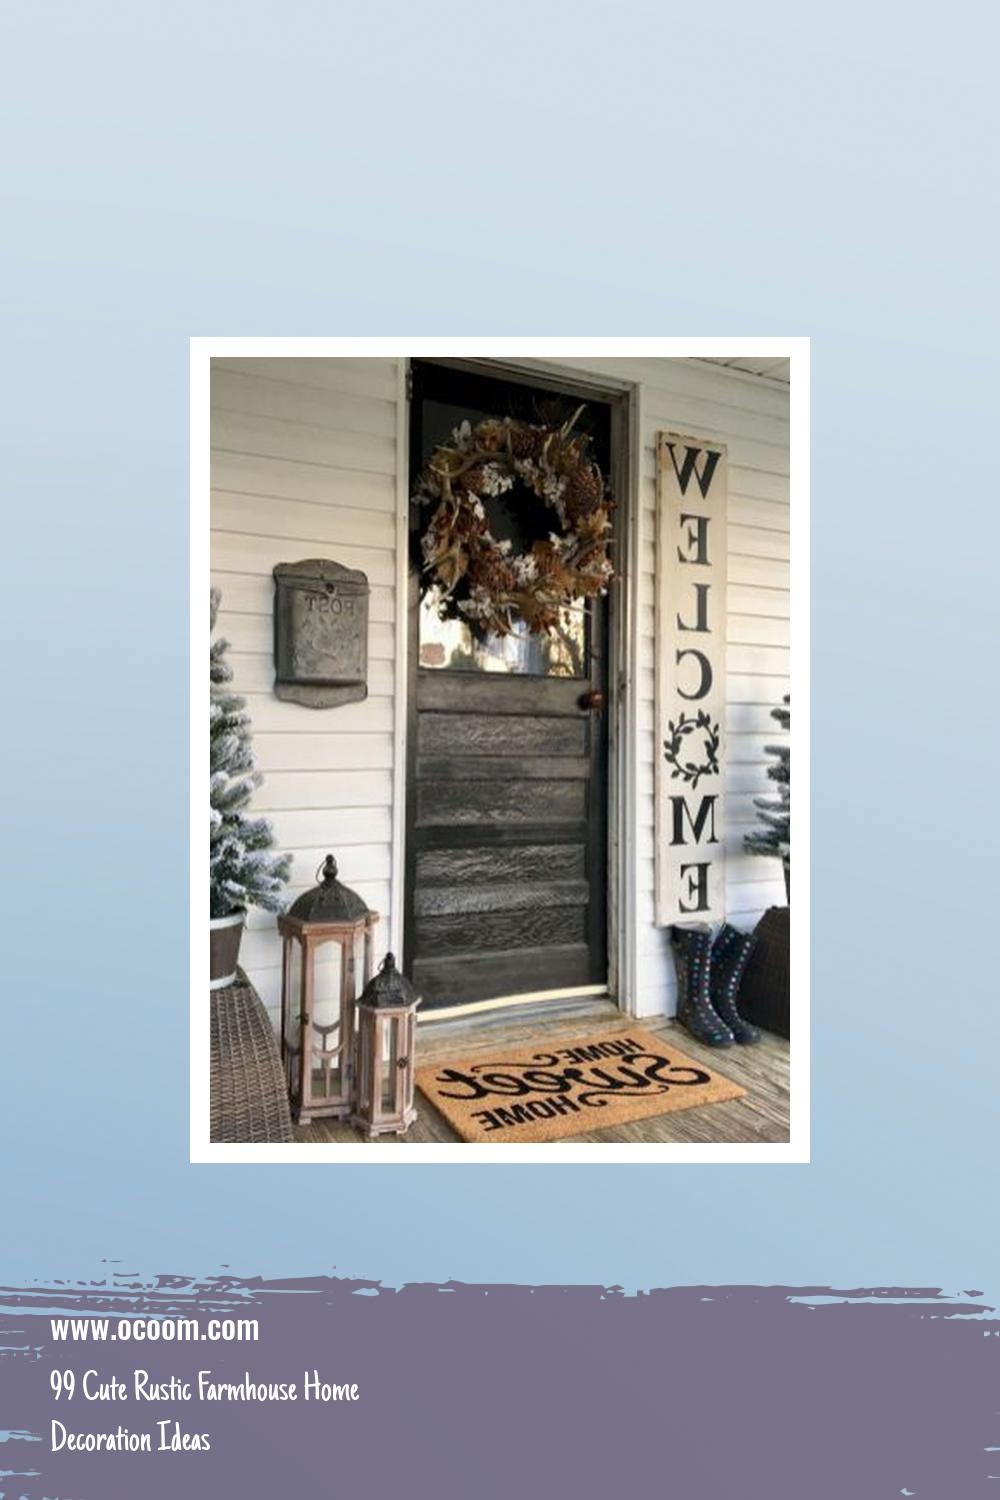 99 Cute Rustic Farmhouse Home Decoration Ideas 10